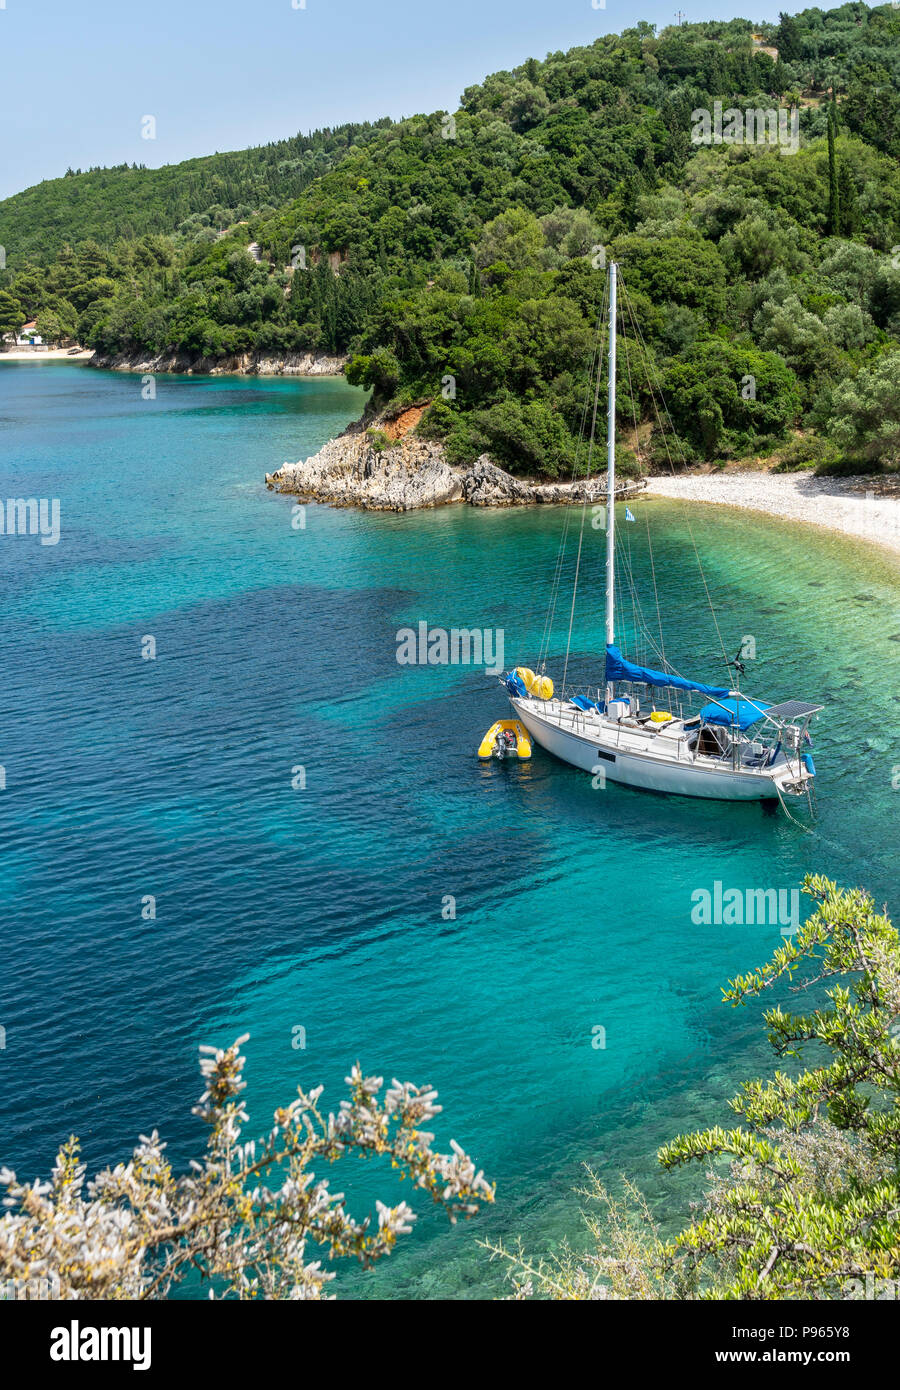 Yacht at anchor in one of the many small  coves near Kioni on the North East coast of the  island of Ithaca, Ionian Sea, Greece - Stock Image